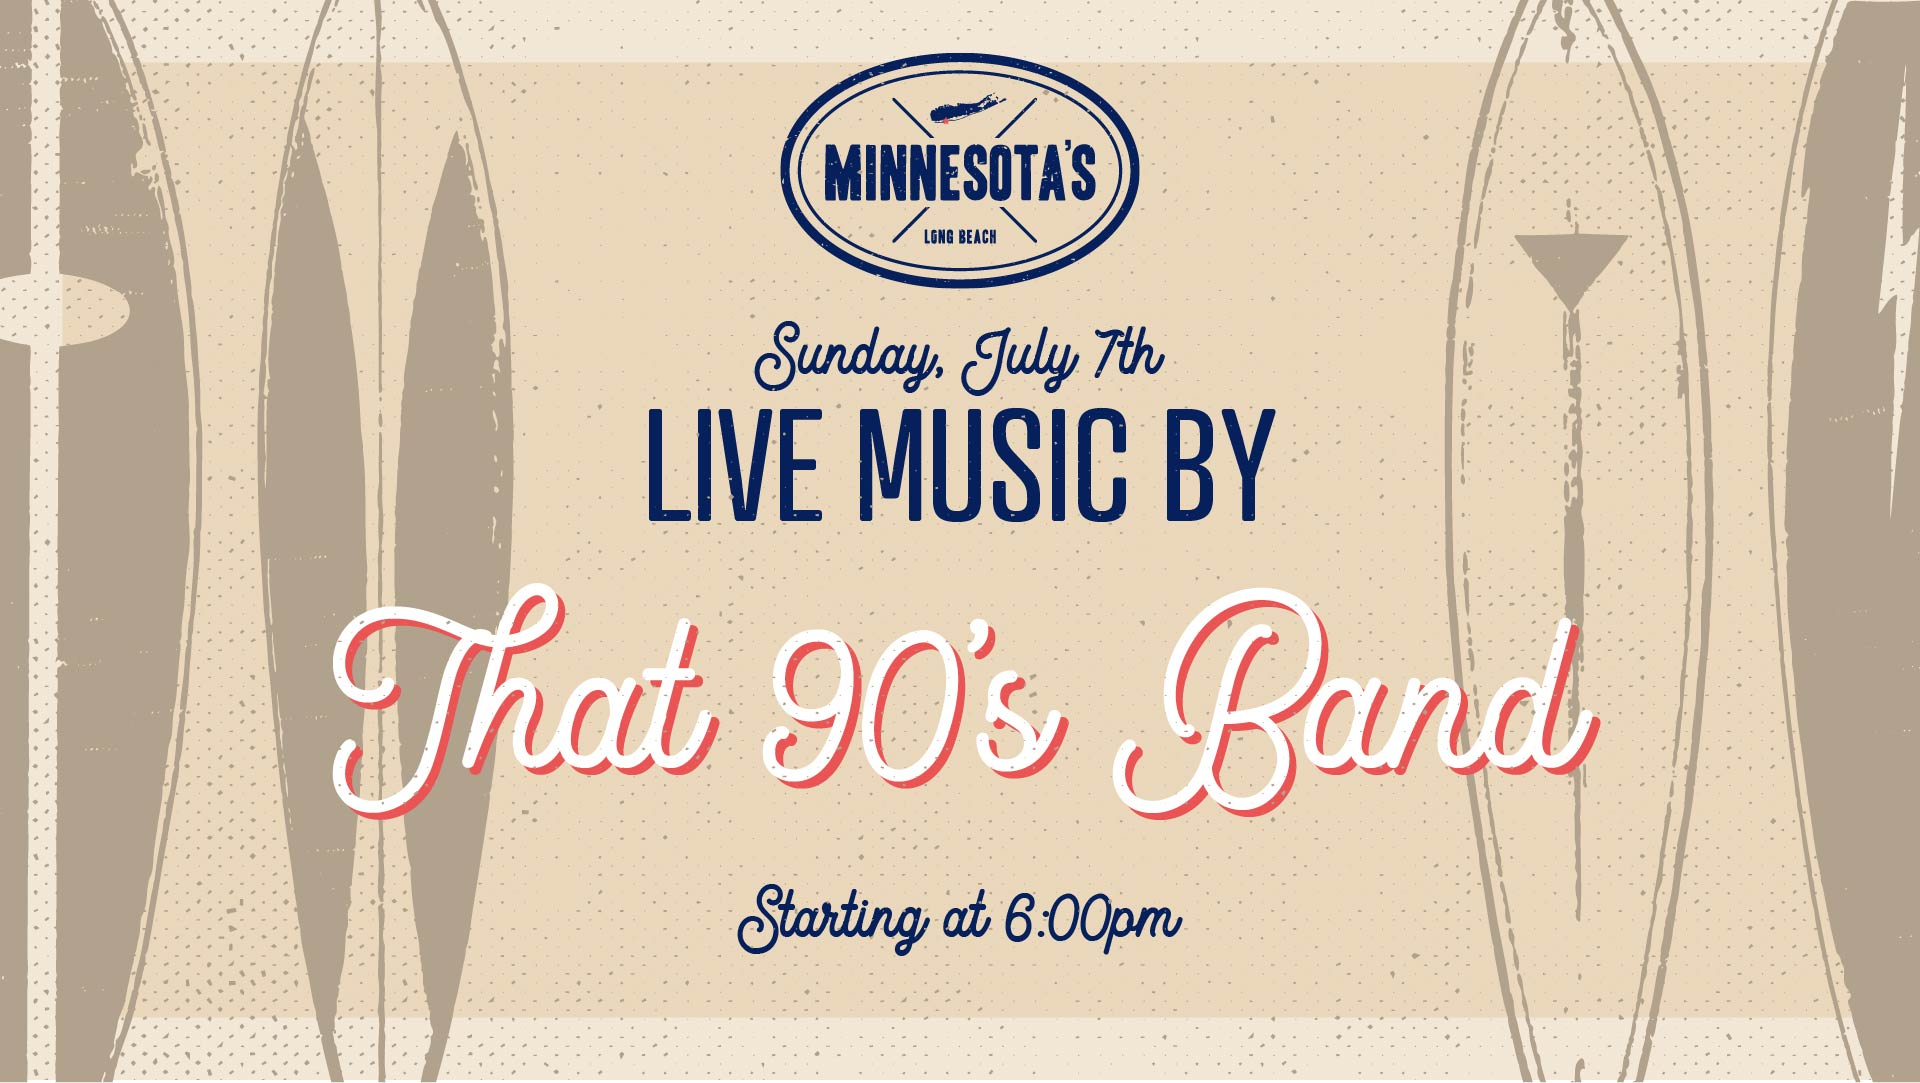 flyer for live music by that 90s band at minnesotas on july 7th at 6pm